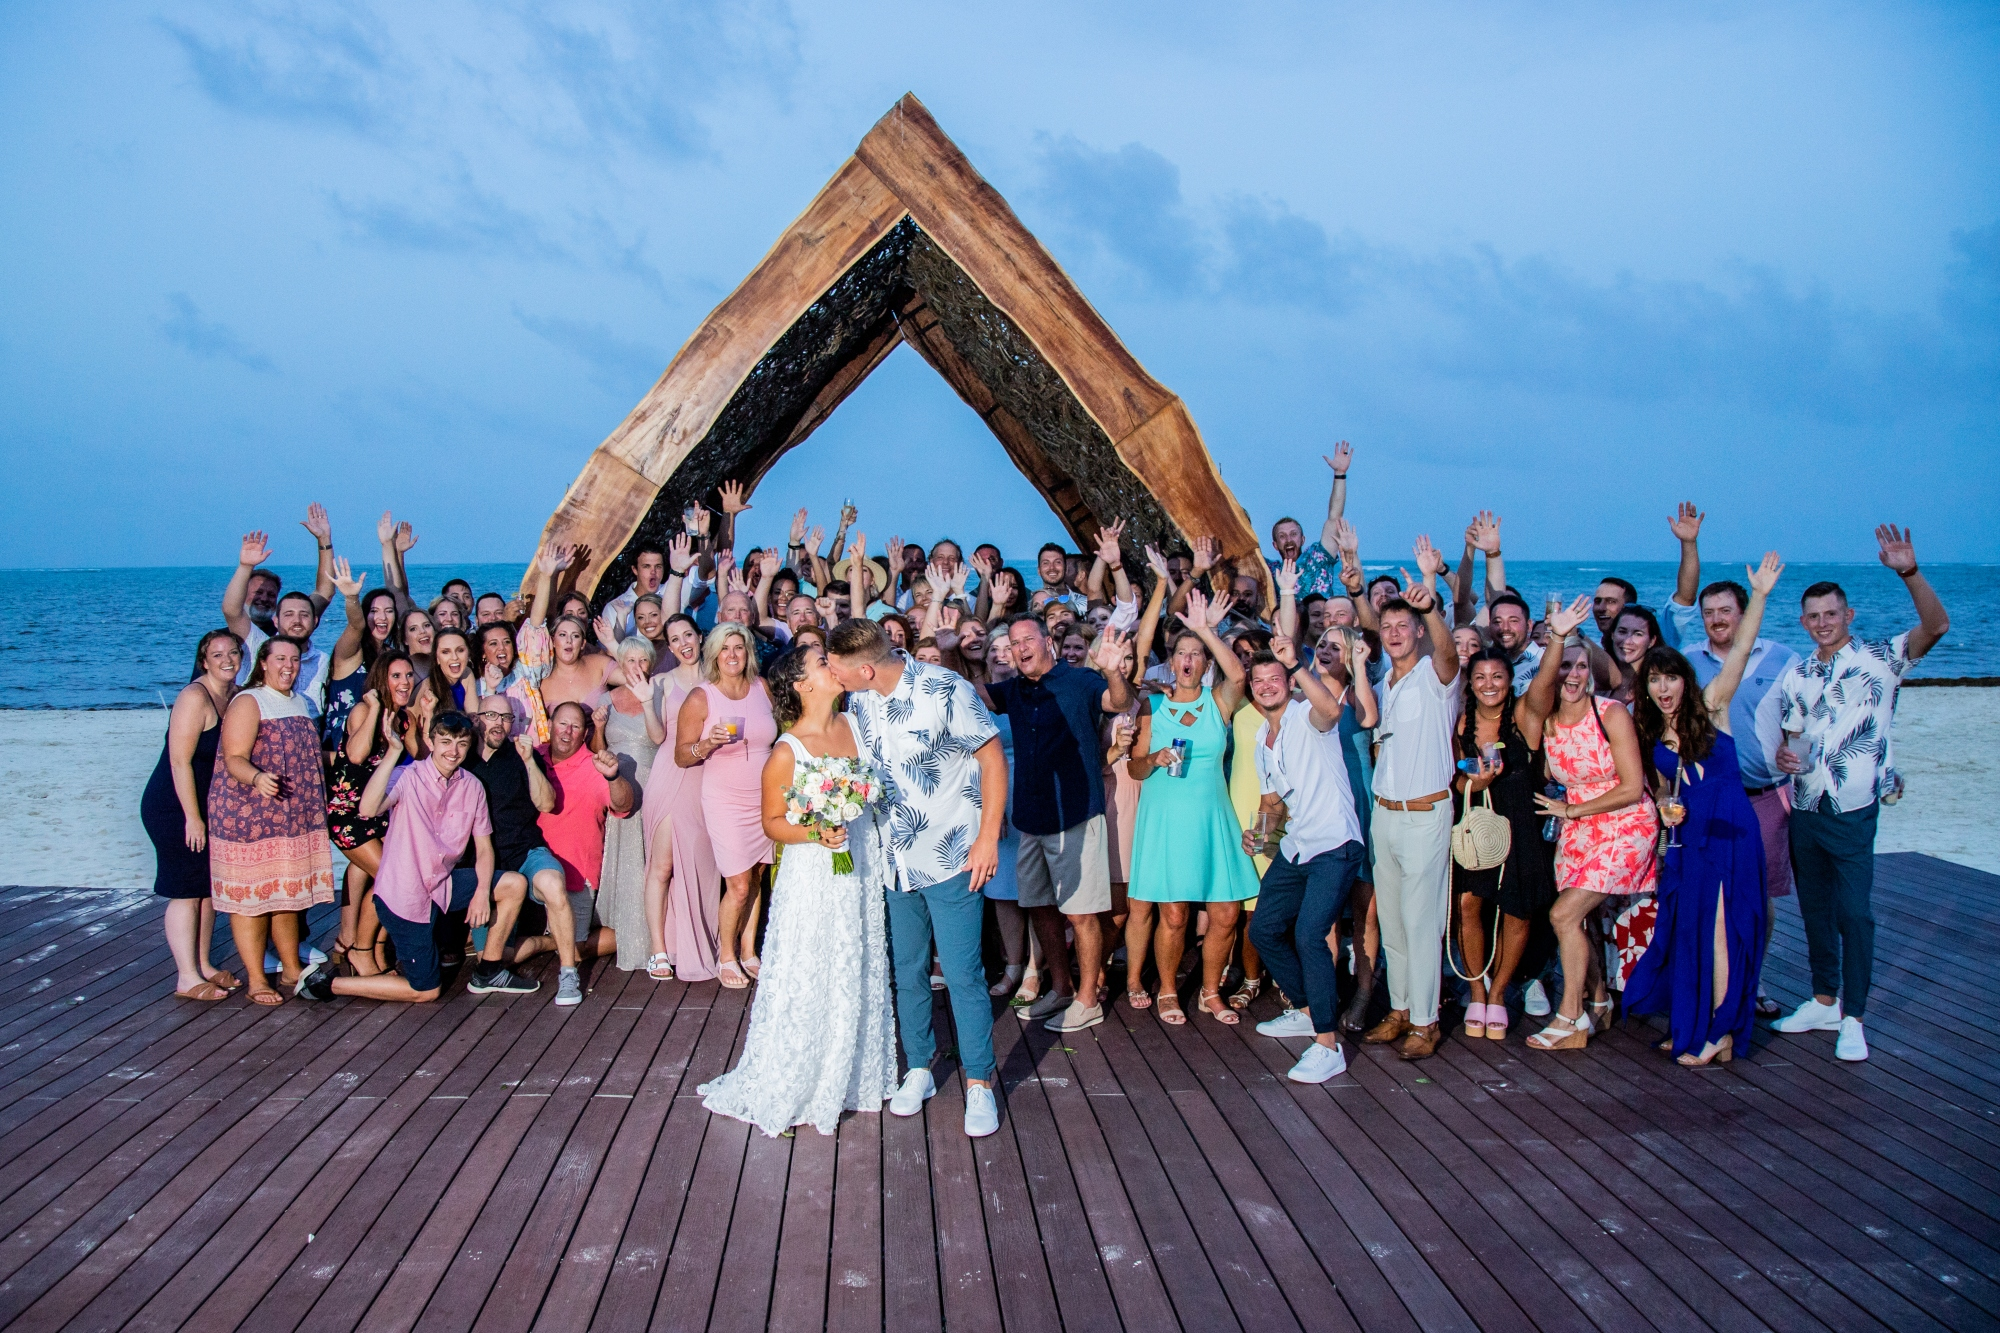 Wedding guests celebrating the newlyweds at a destination wedding